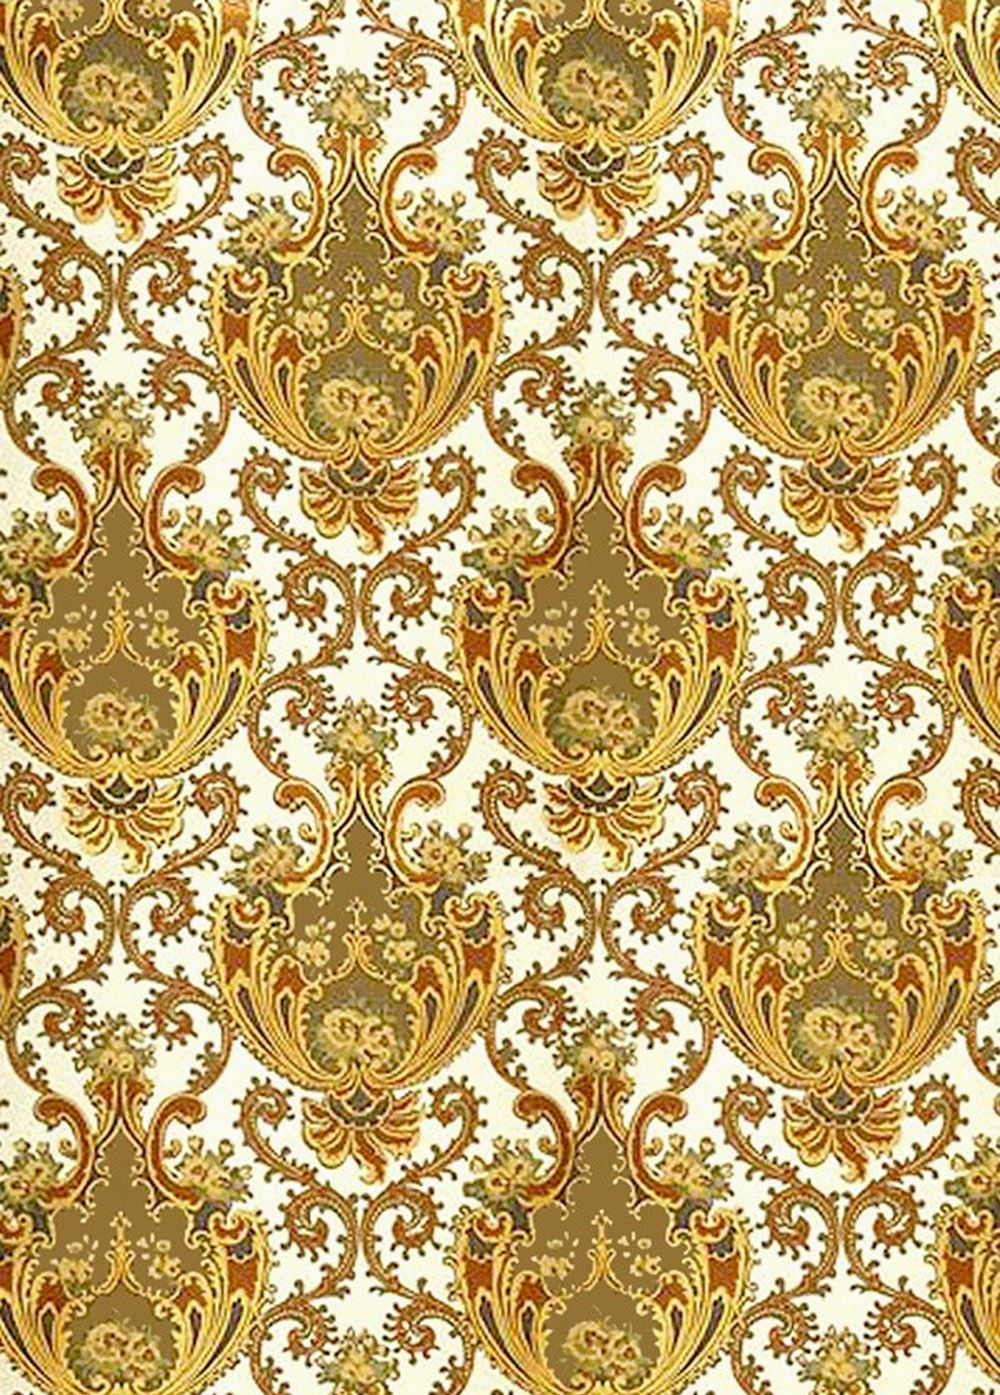 Rococo wallpaper. The emphasis in this wallpaper is